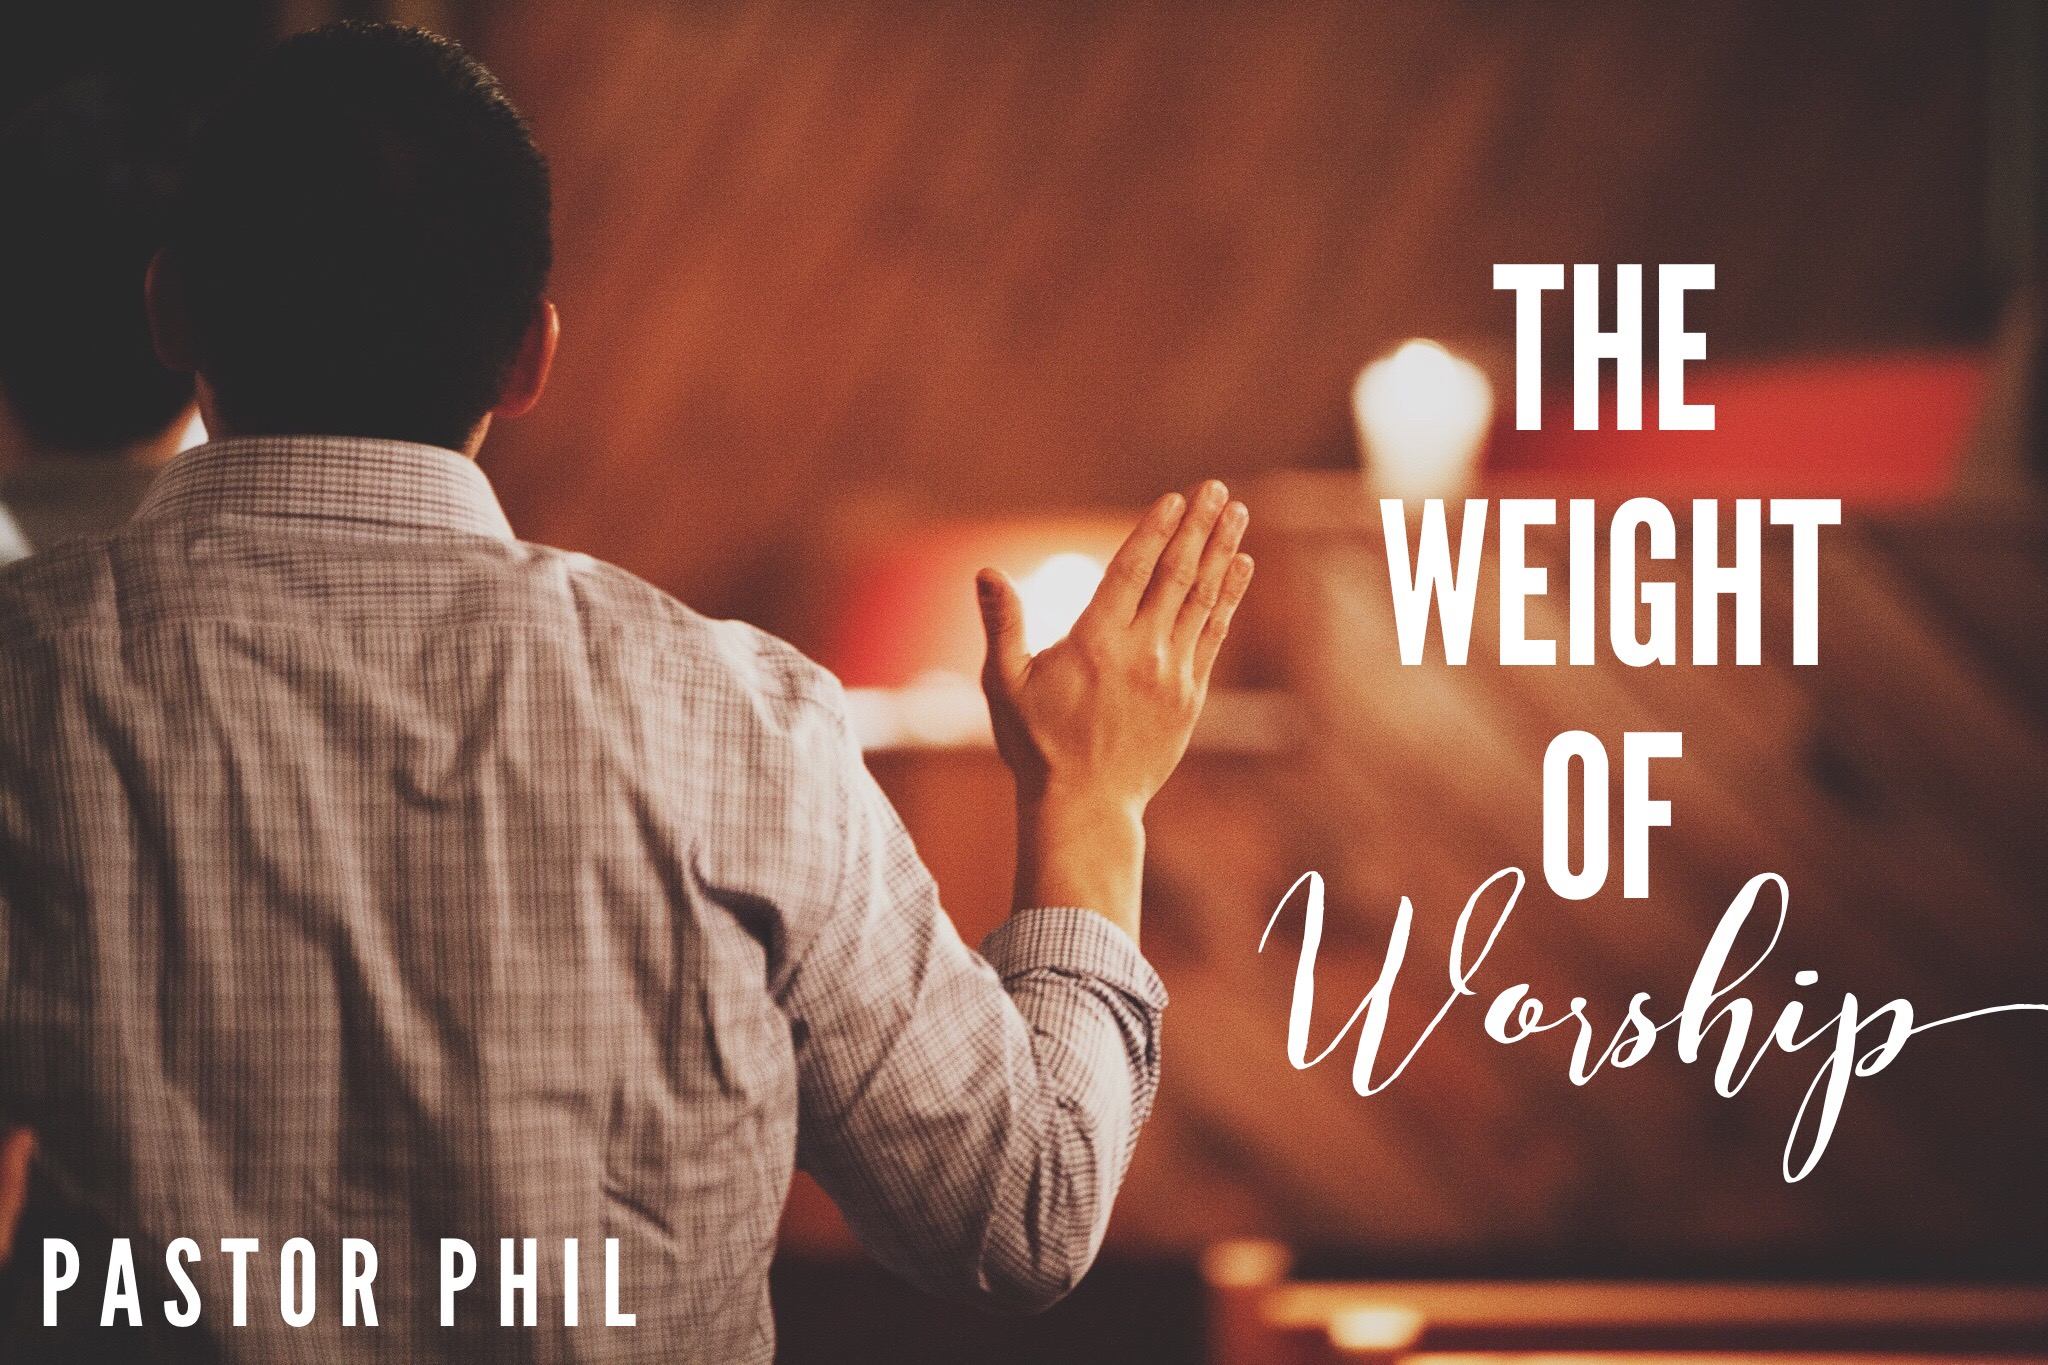 The Weight of Worship